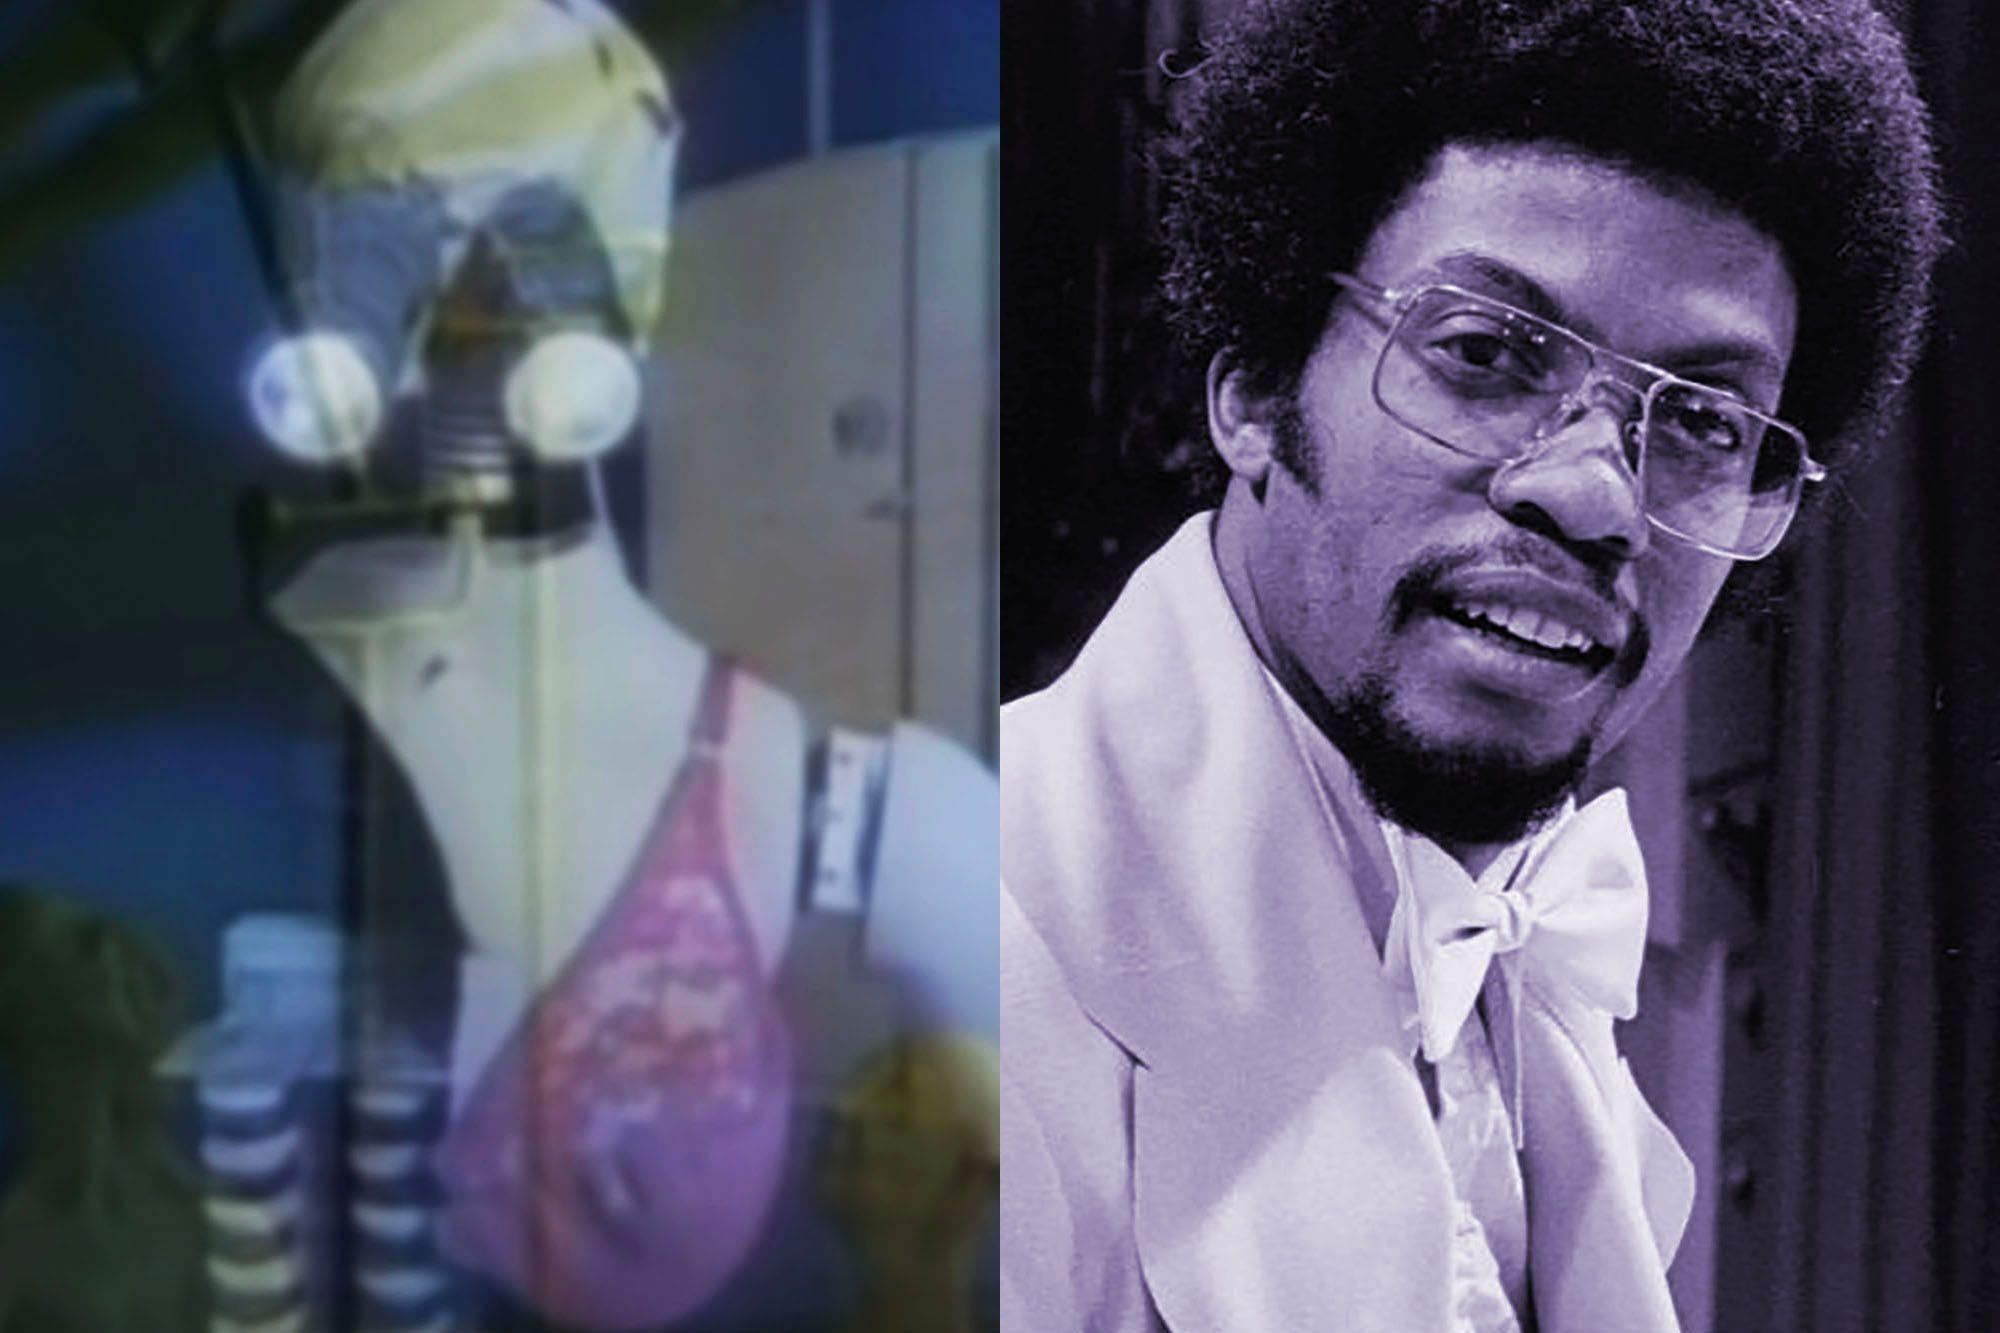 Futureshock: Herbie Hancock and the Body Politics of Pop